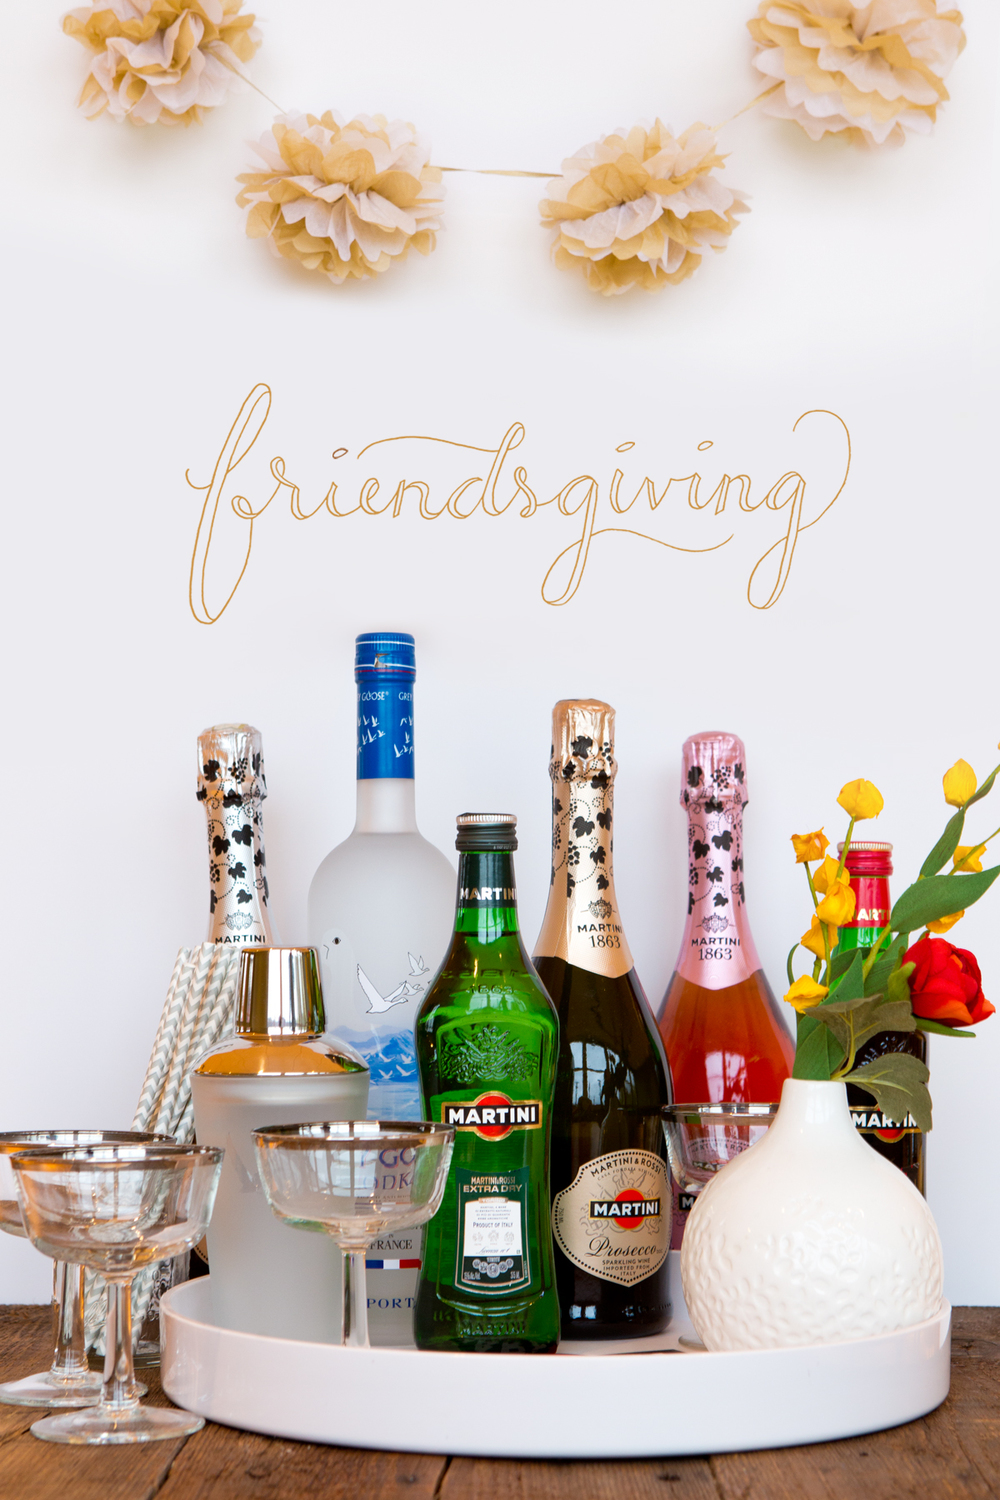 ASTI11405_Wk3Day2_FriendsgivingBar_Pinterest.jpg